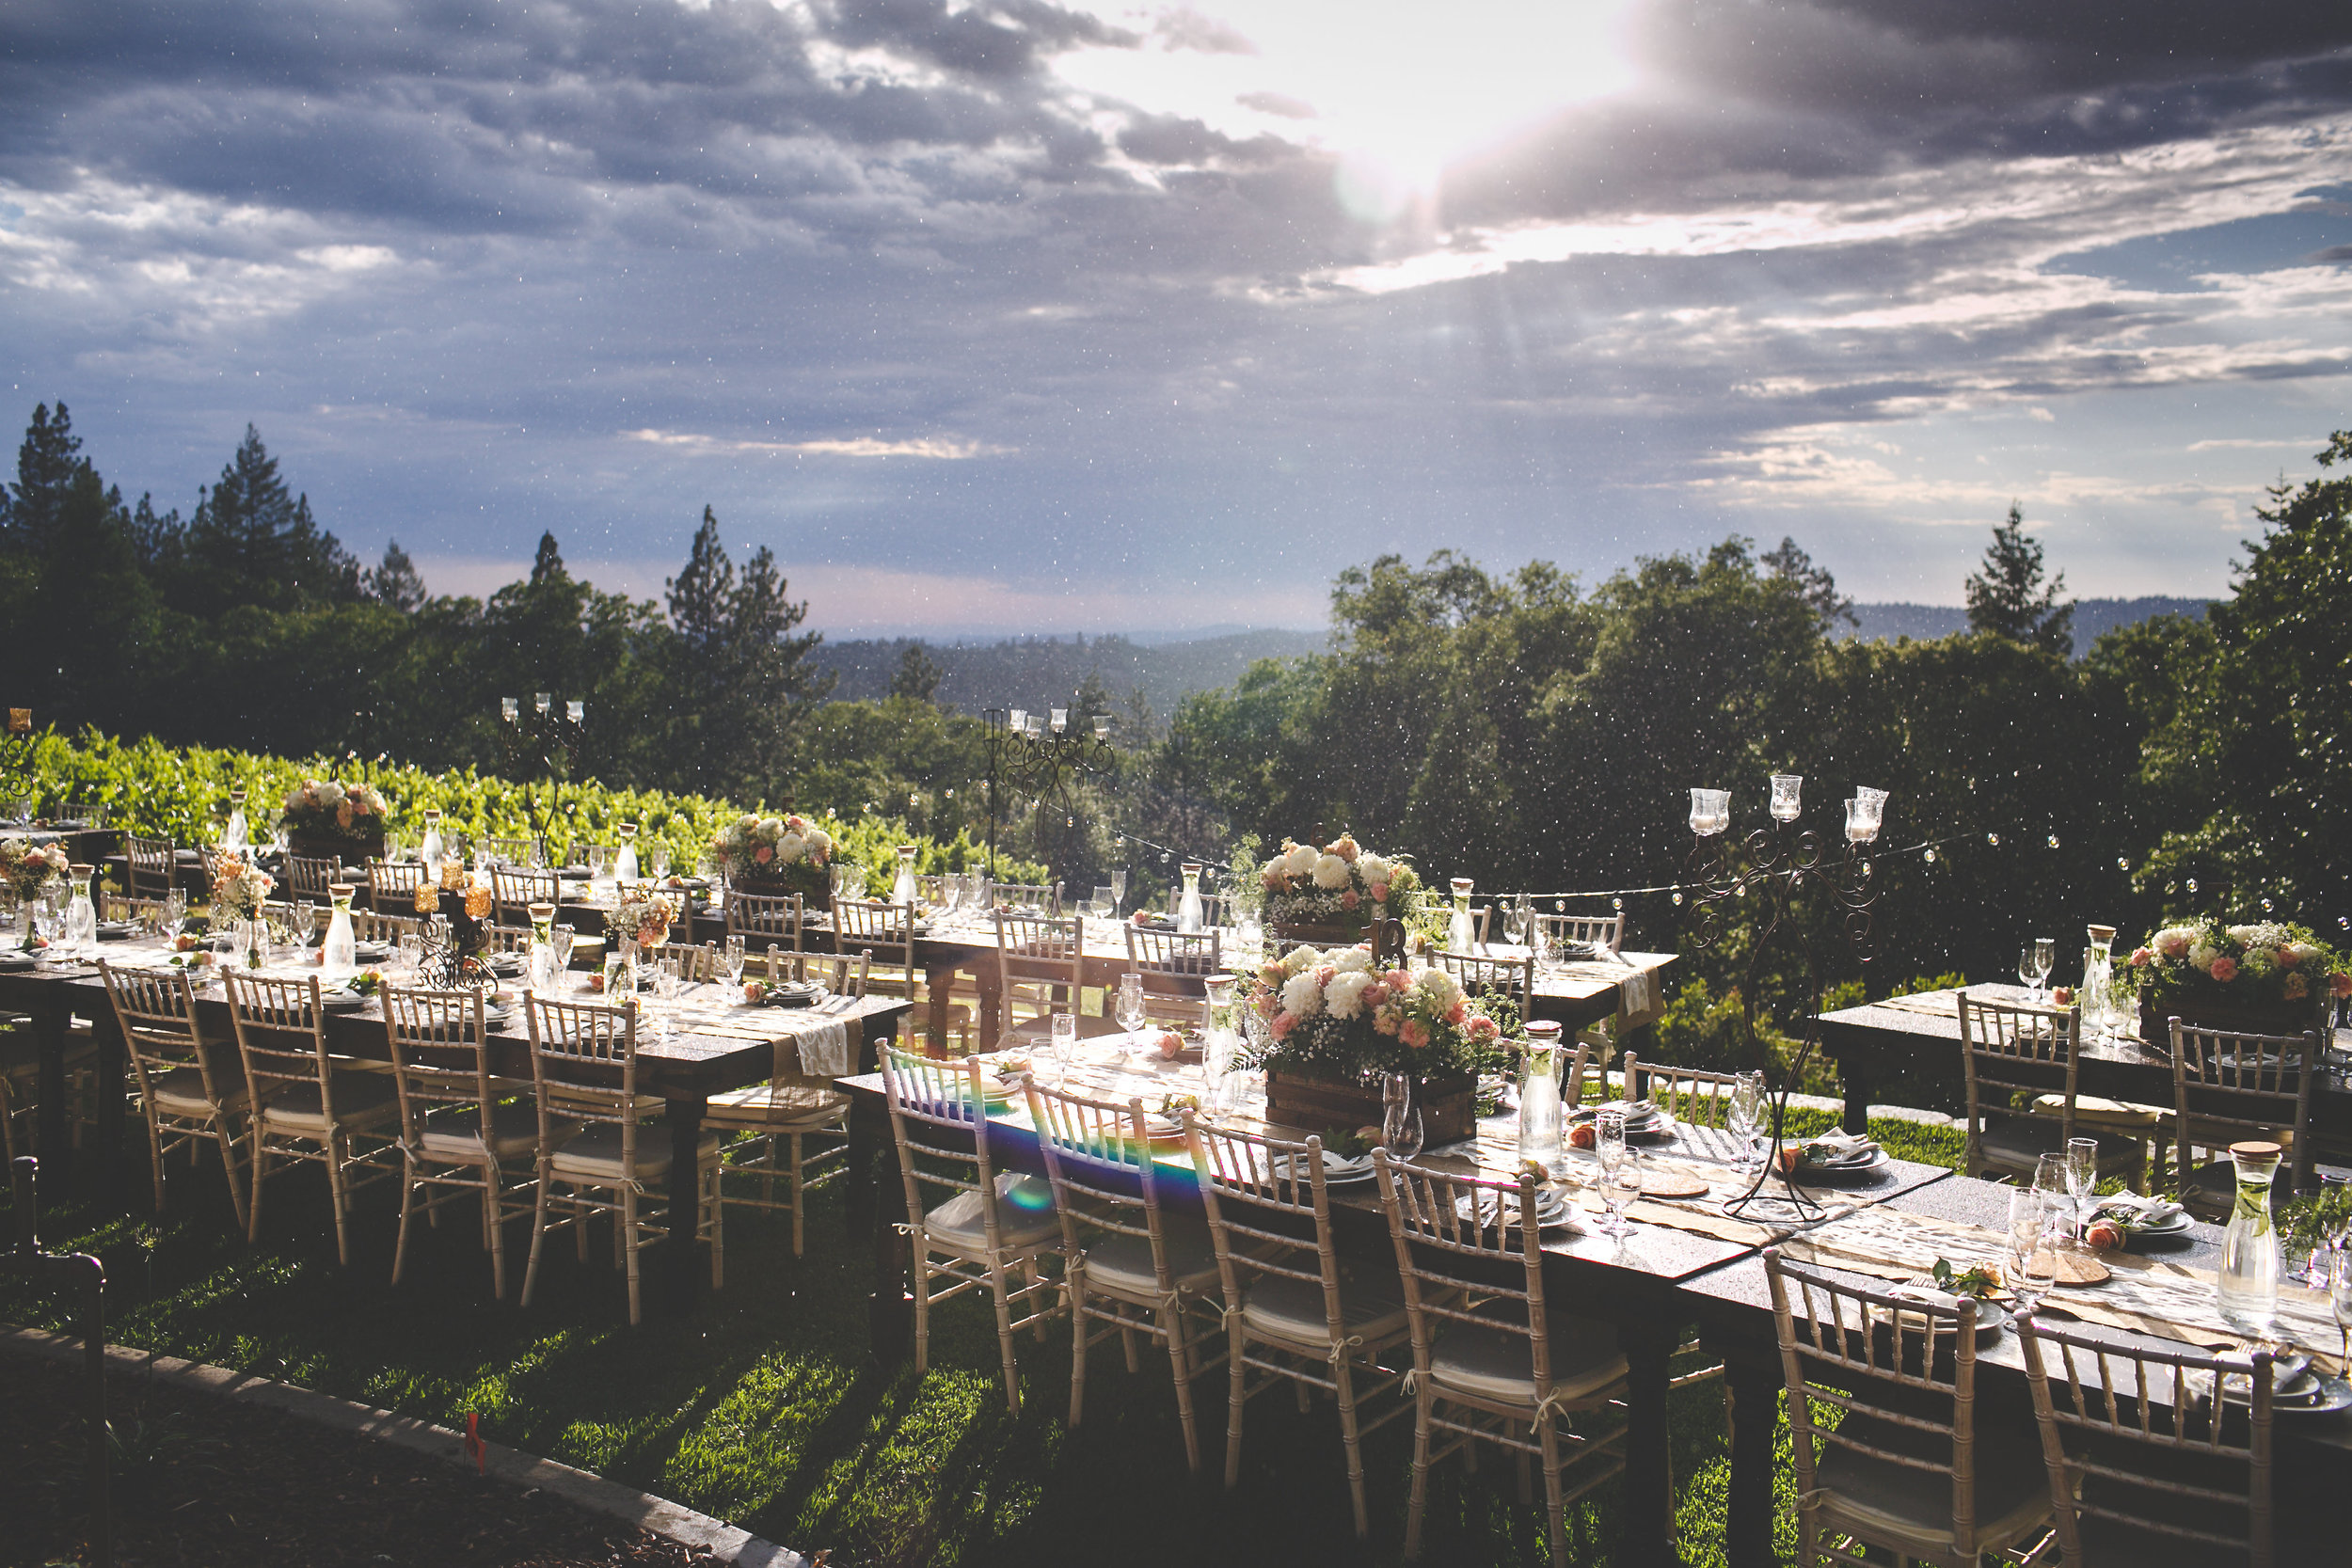 The table is set, we wait for family, friends and loved ones...rain and shine.